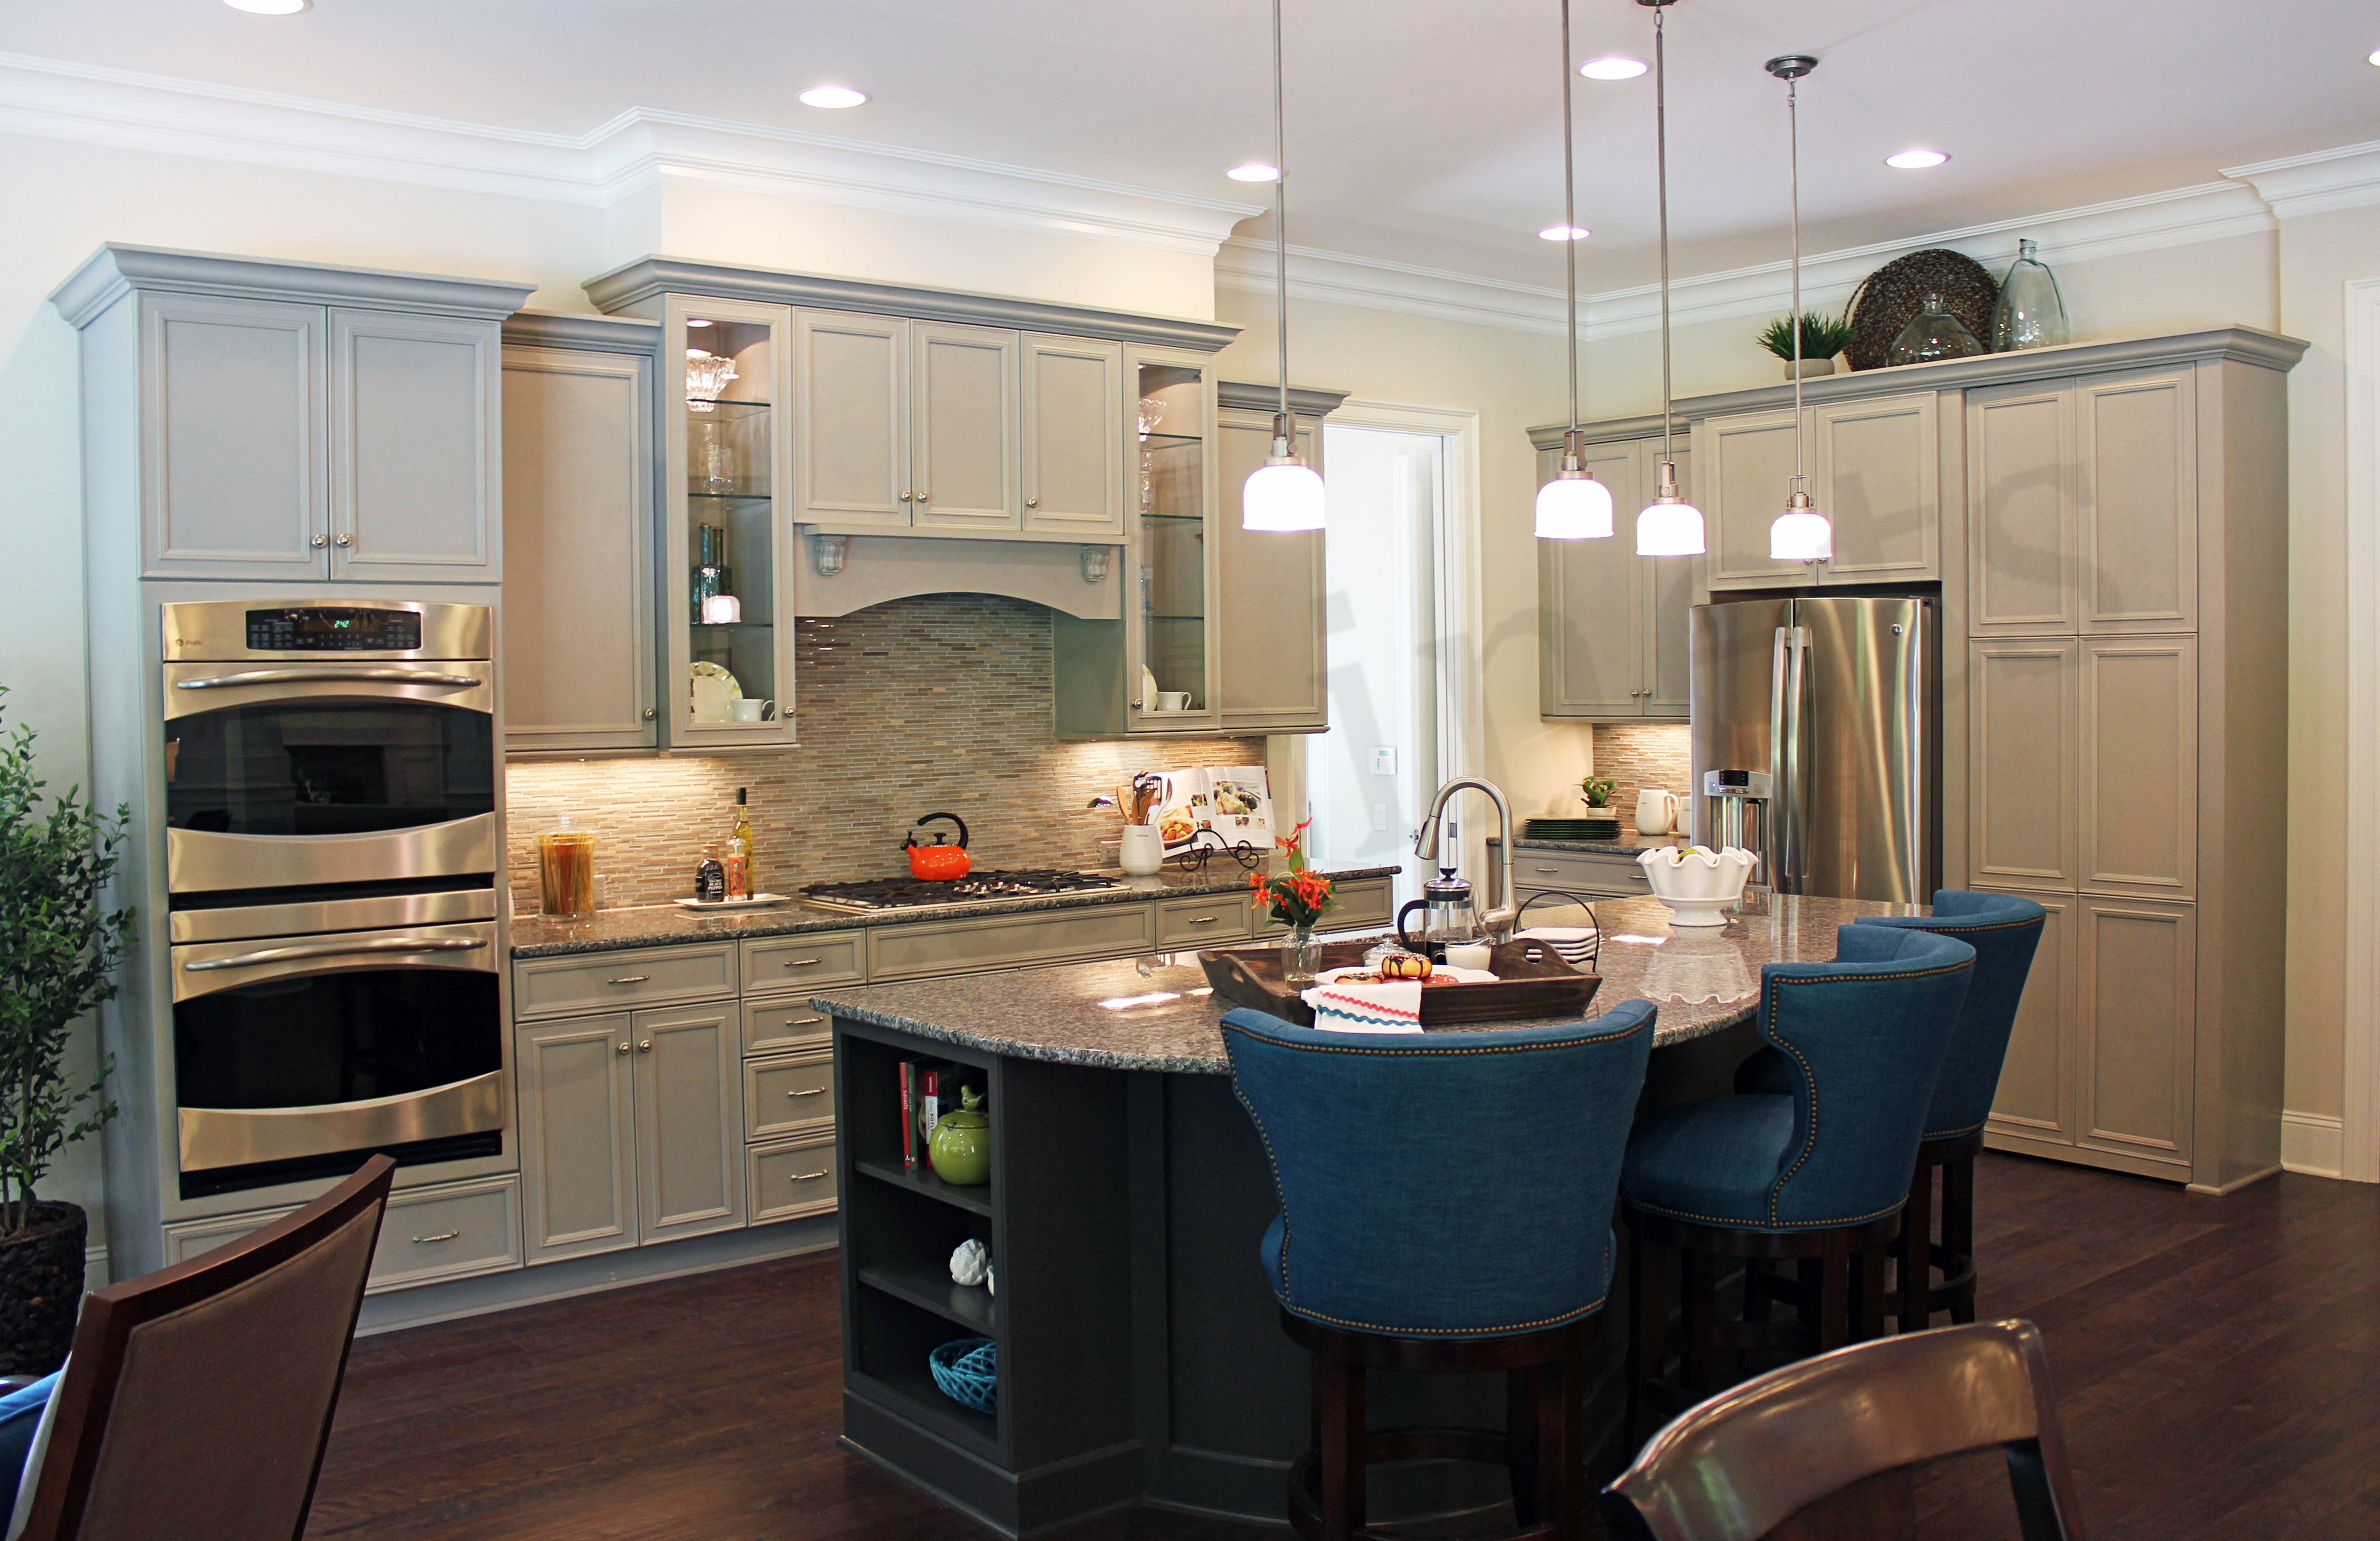 Dara Barber Manager Of The Charlotte Kitchen Design Company Cabinets And Details How Technology Functionality Are Now Essential To